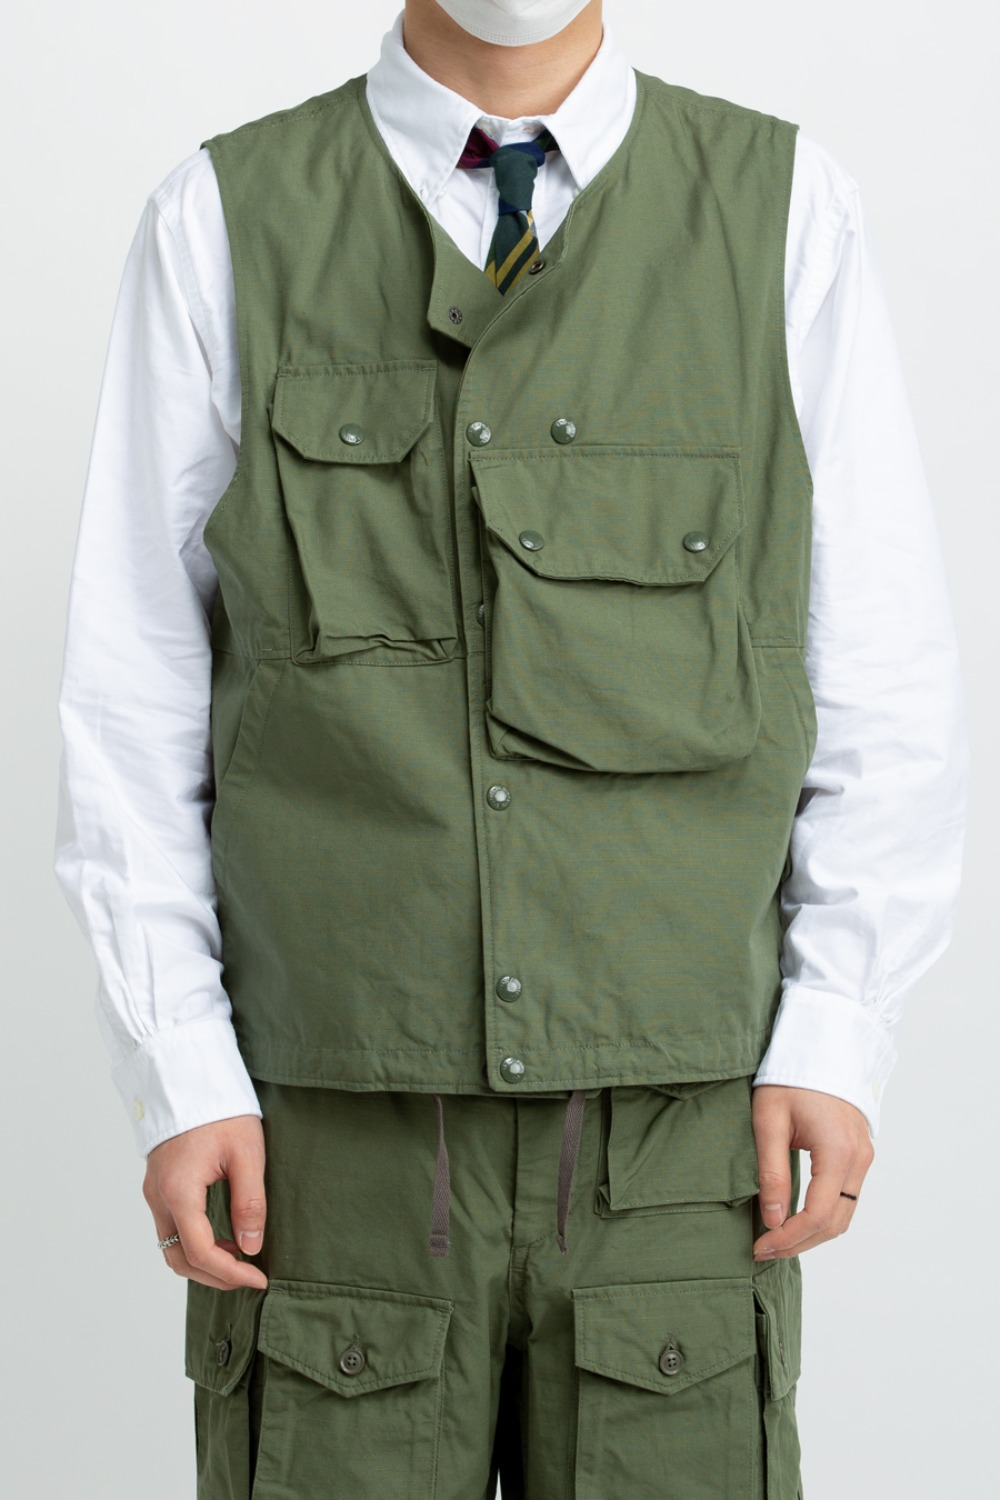 COVER VEST OLIVE COTTON RIPSTOP